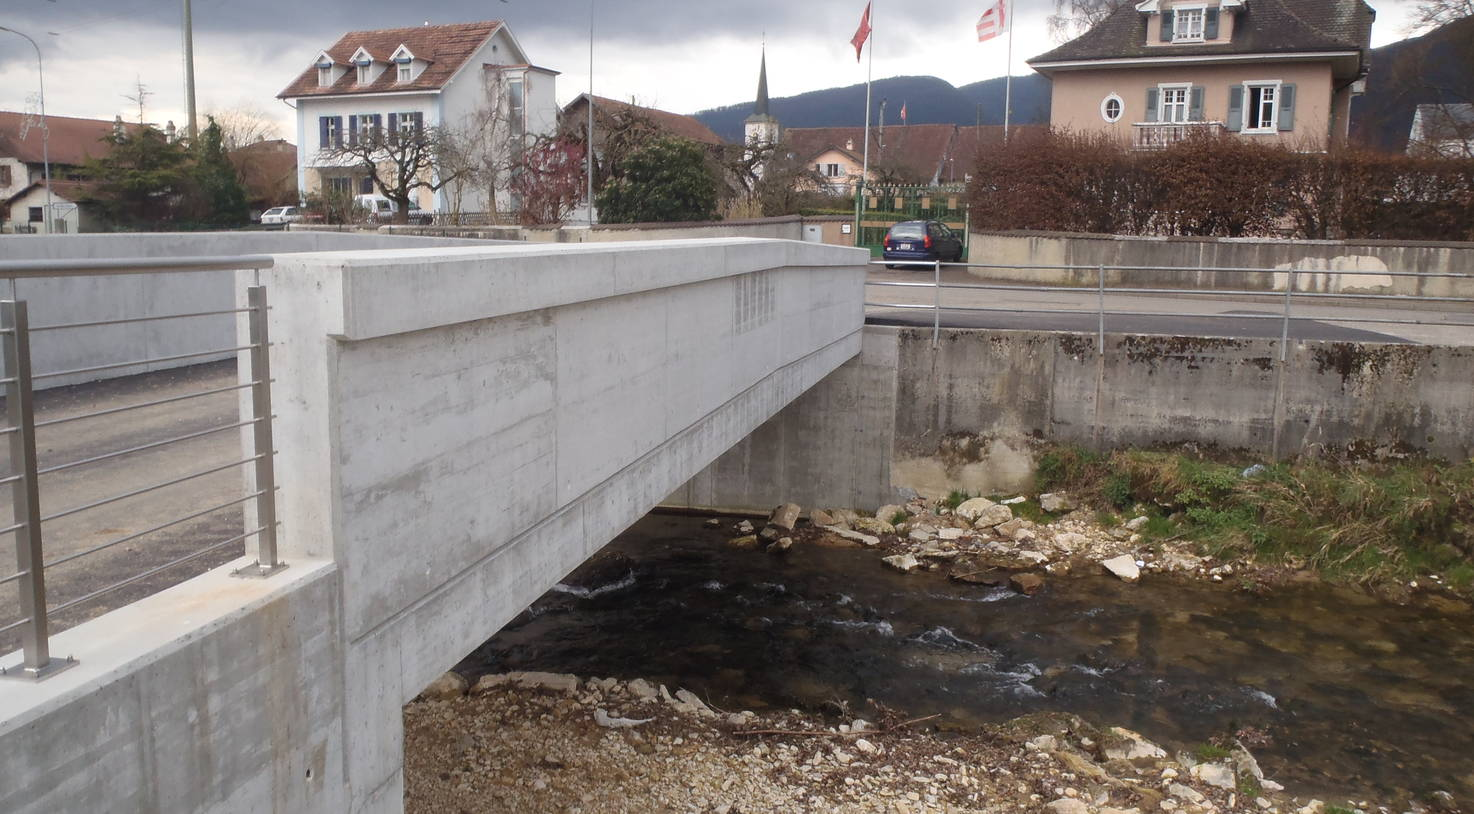 PONT BRINGOLD - COURTETELLE